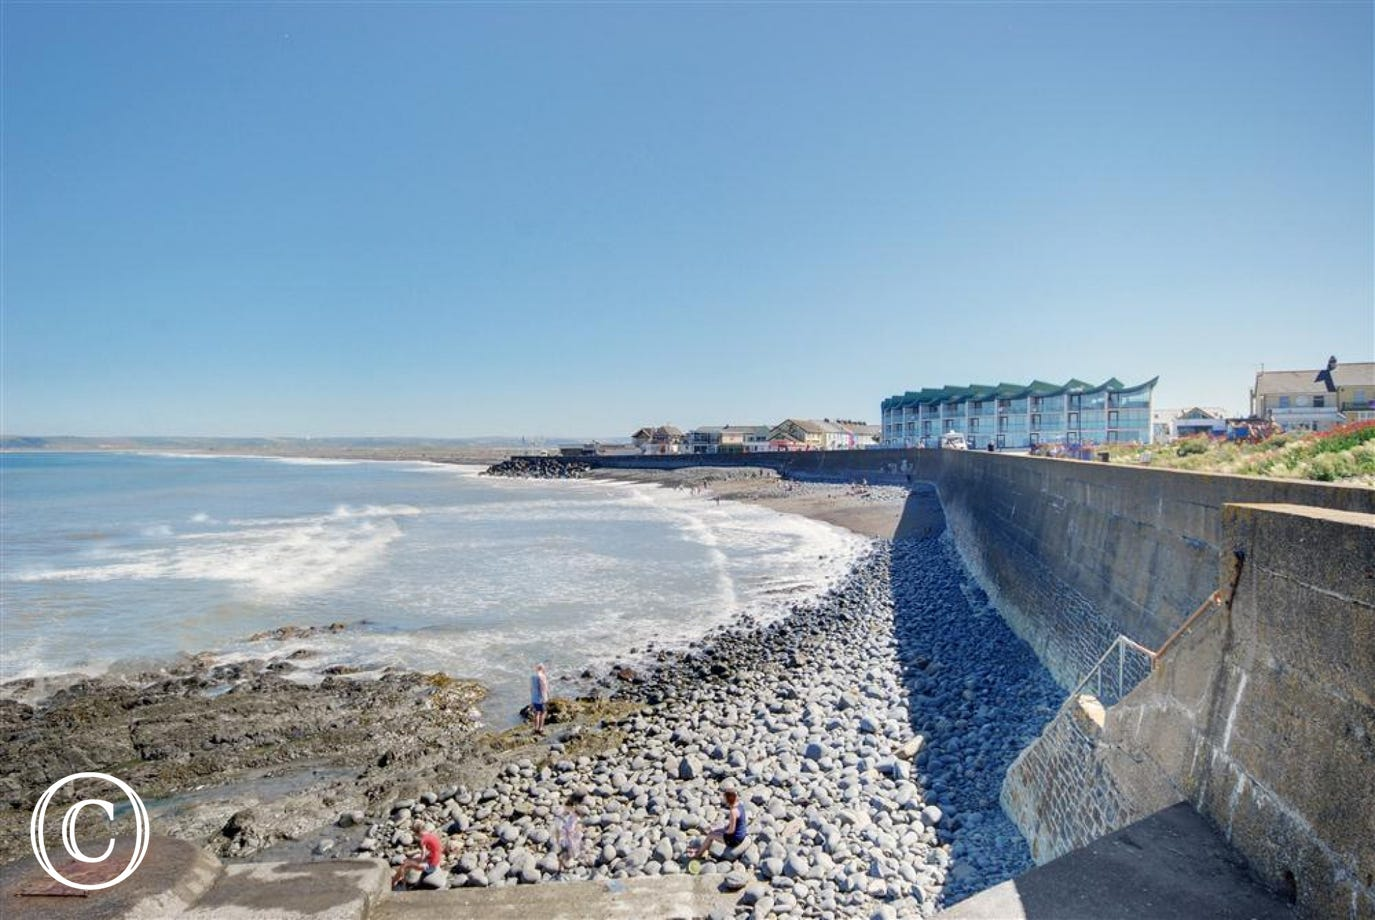 Here you can see Westward Ho!